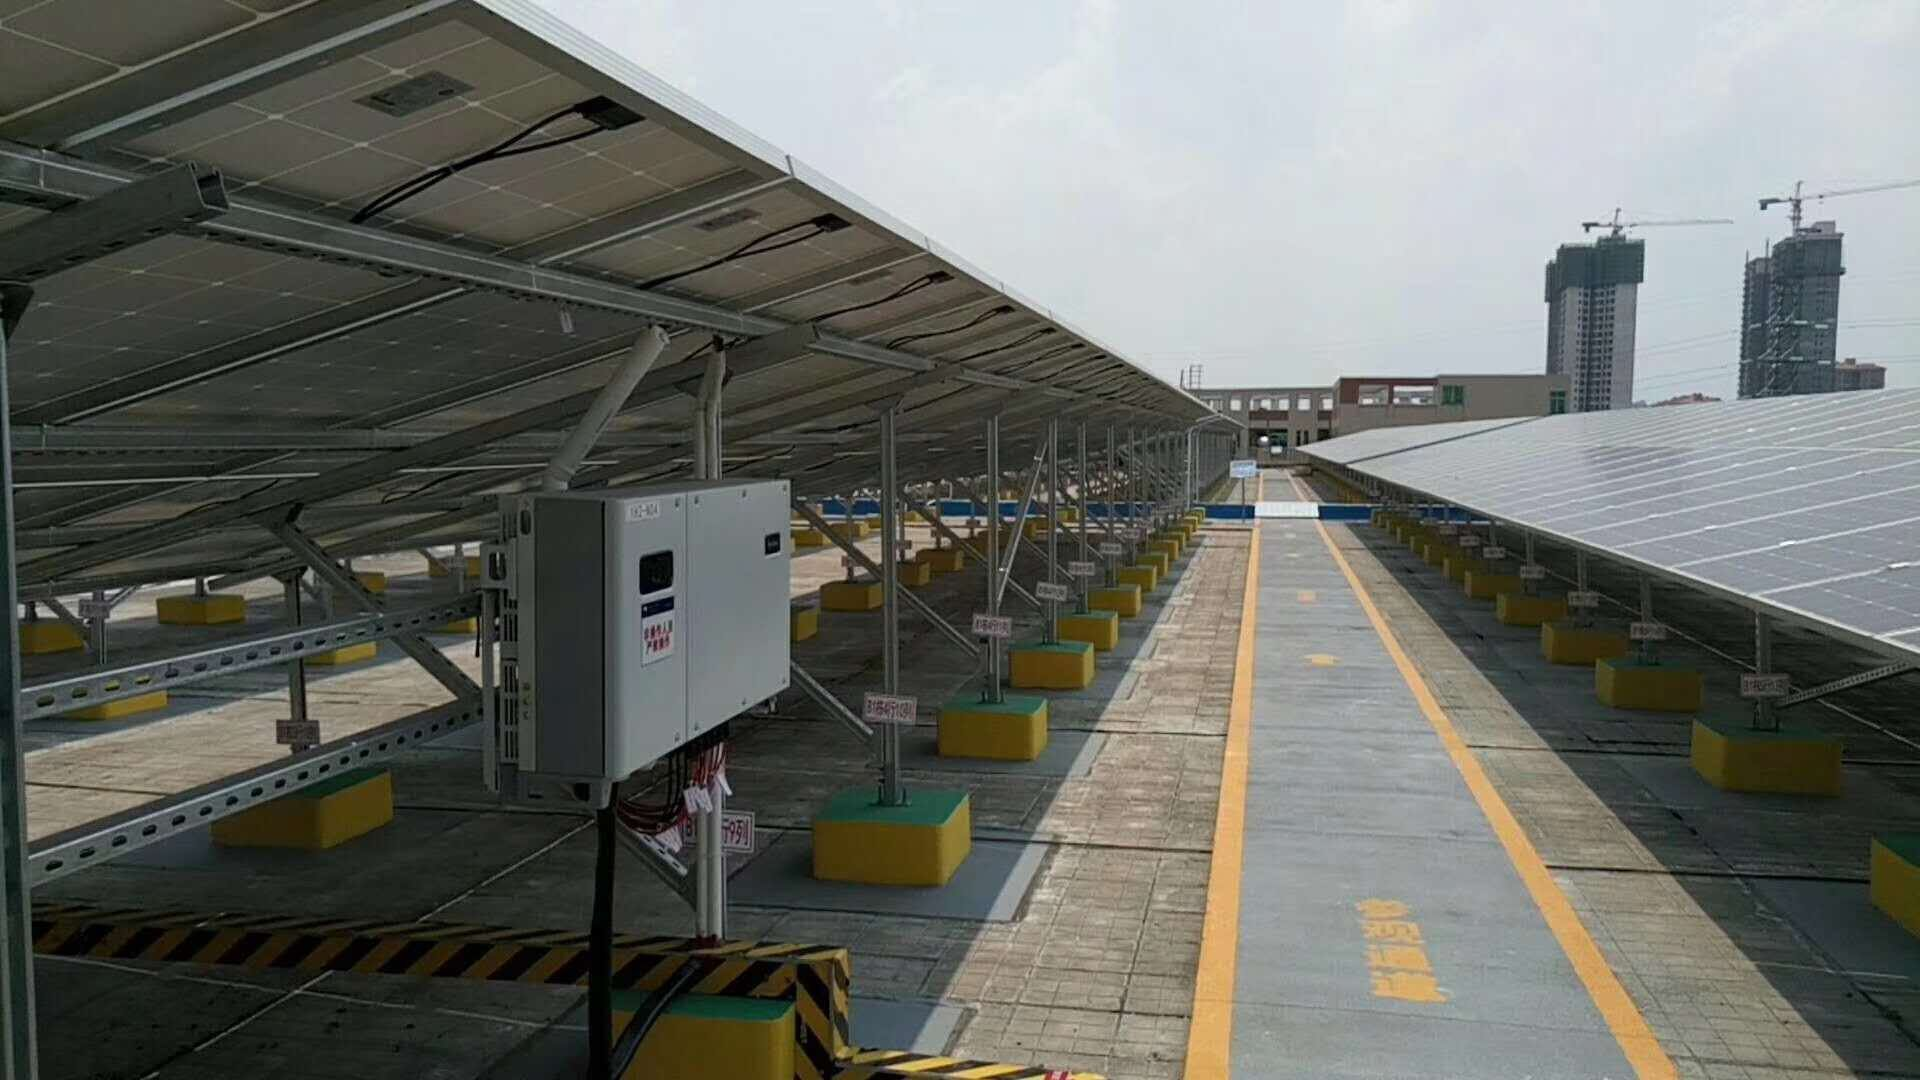 ZENGCHENG 644KW ON-GRID SYSTEM